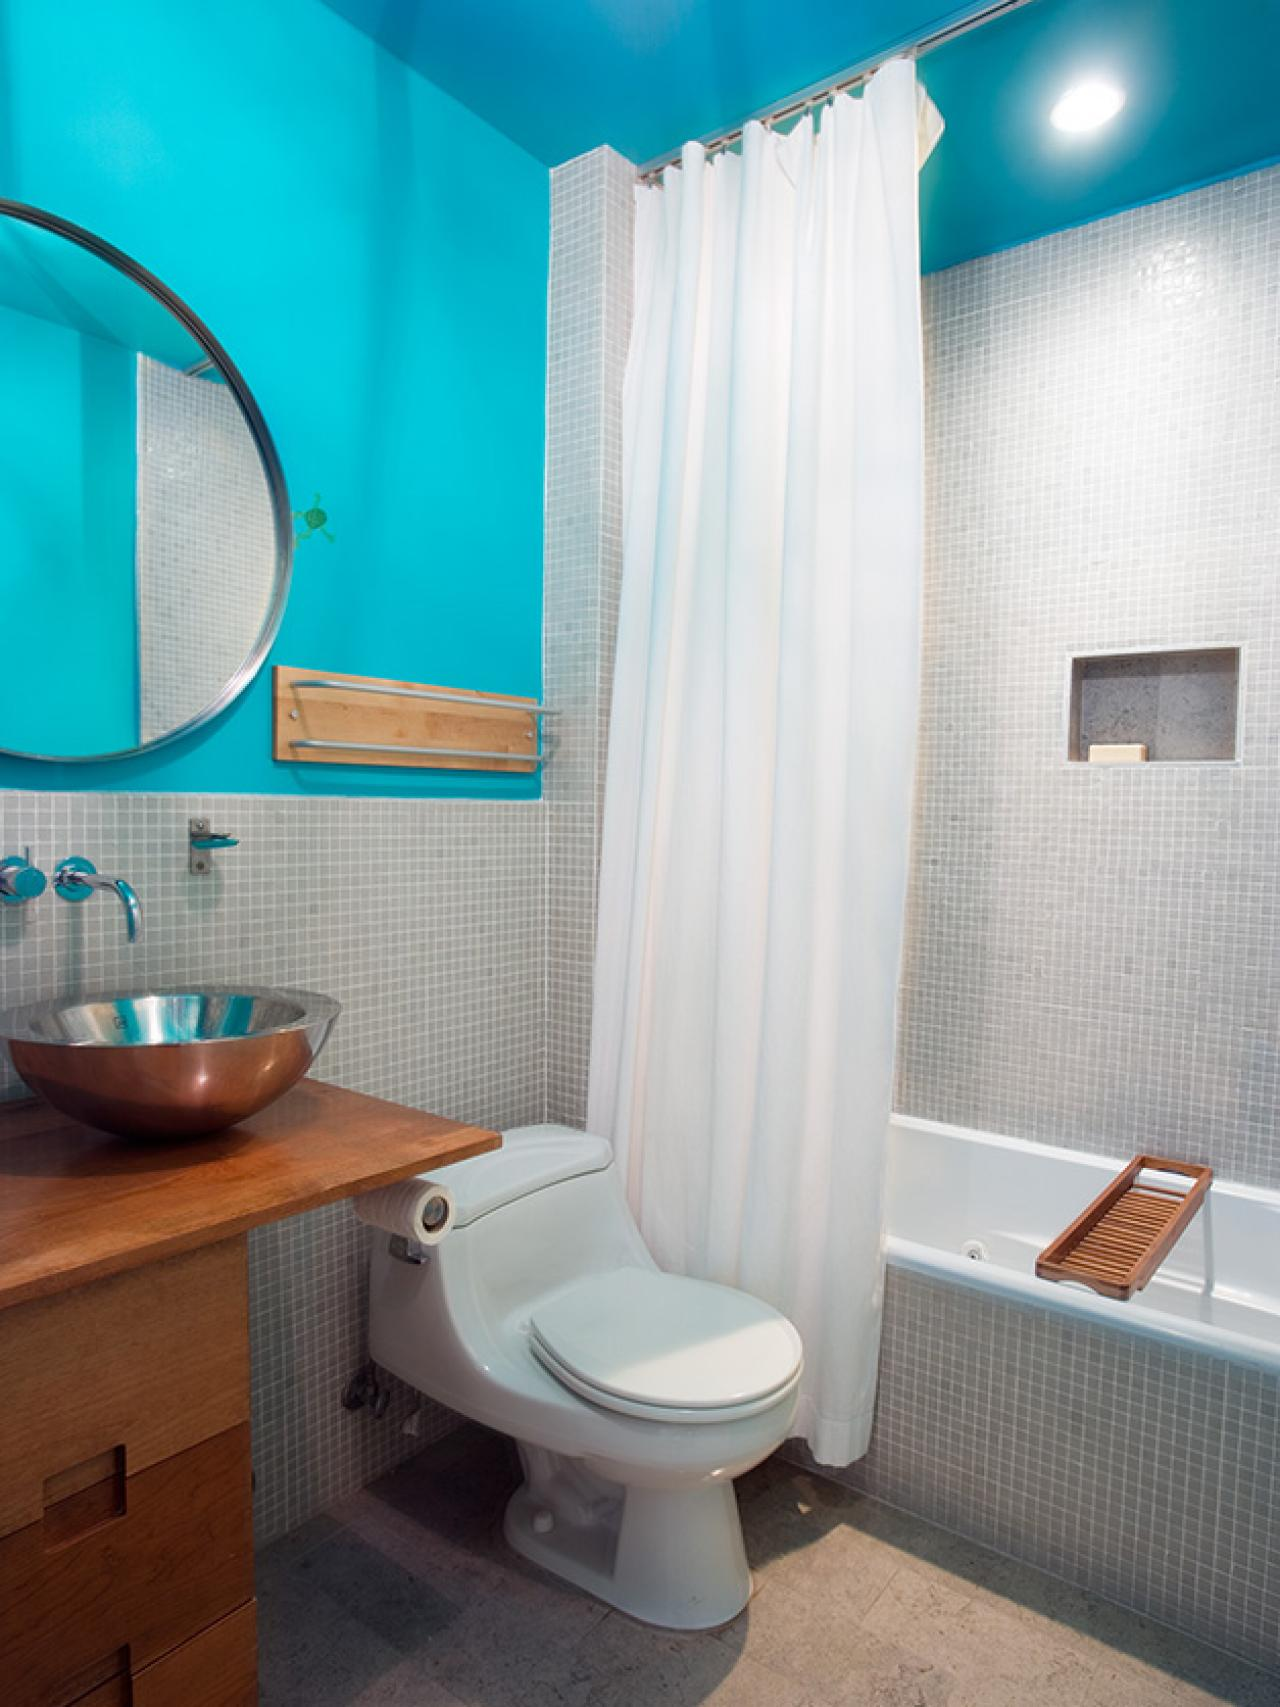 Paint Colors For Bathrooms Awesome Bathroom Color And Paint Ideas Pictures & Tips From Hgtv  Hgtv Design Decoration